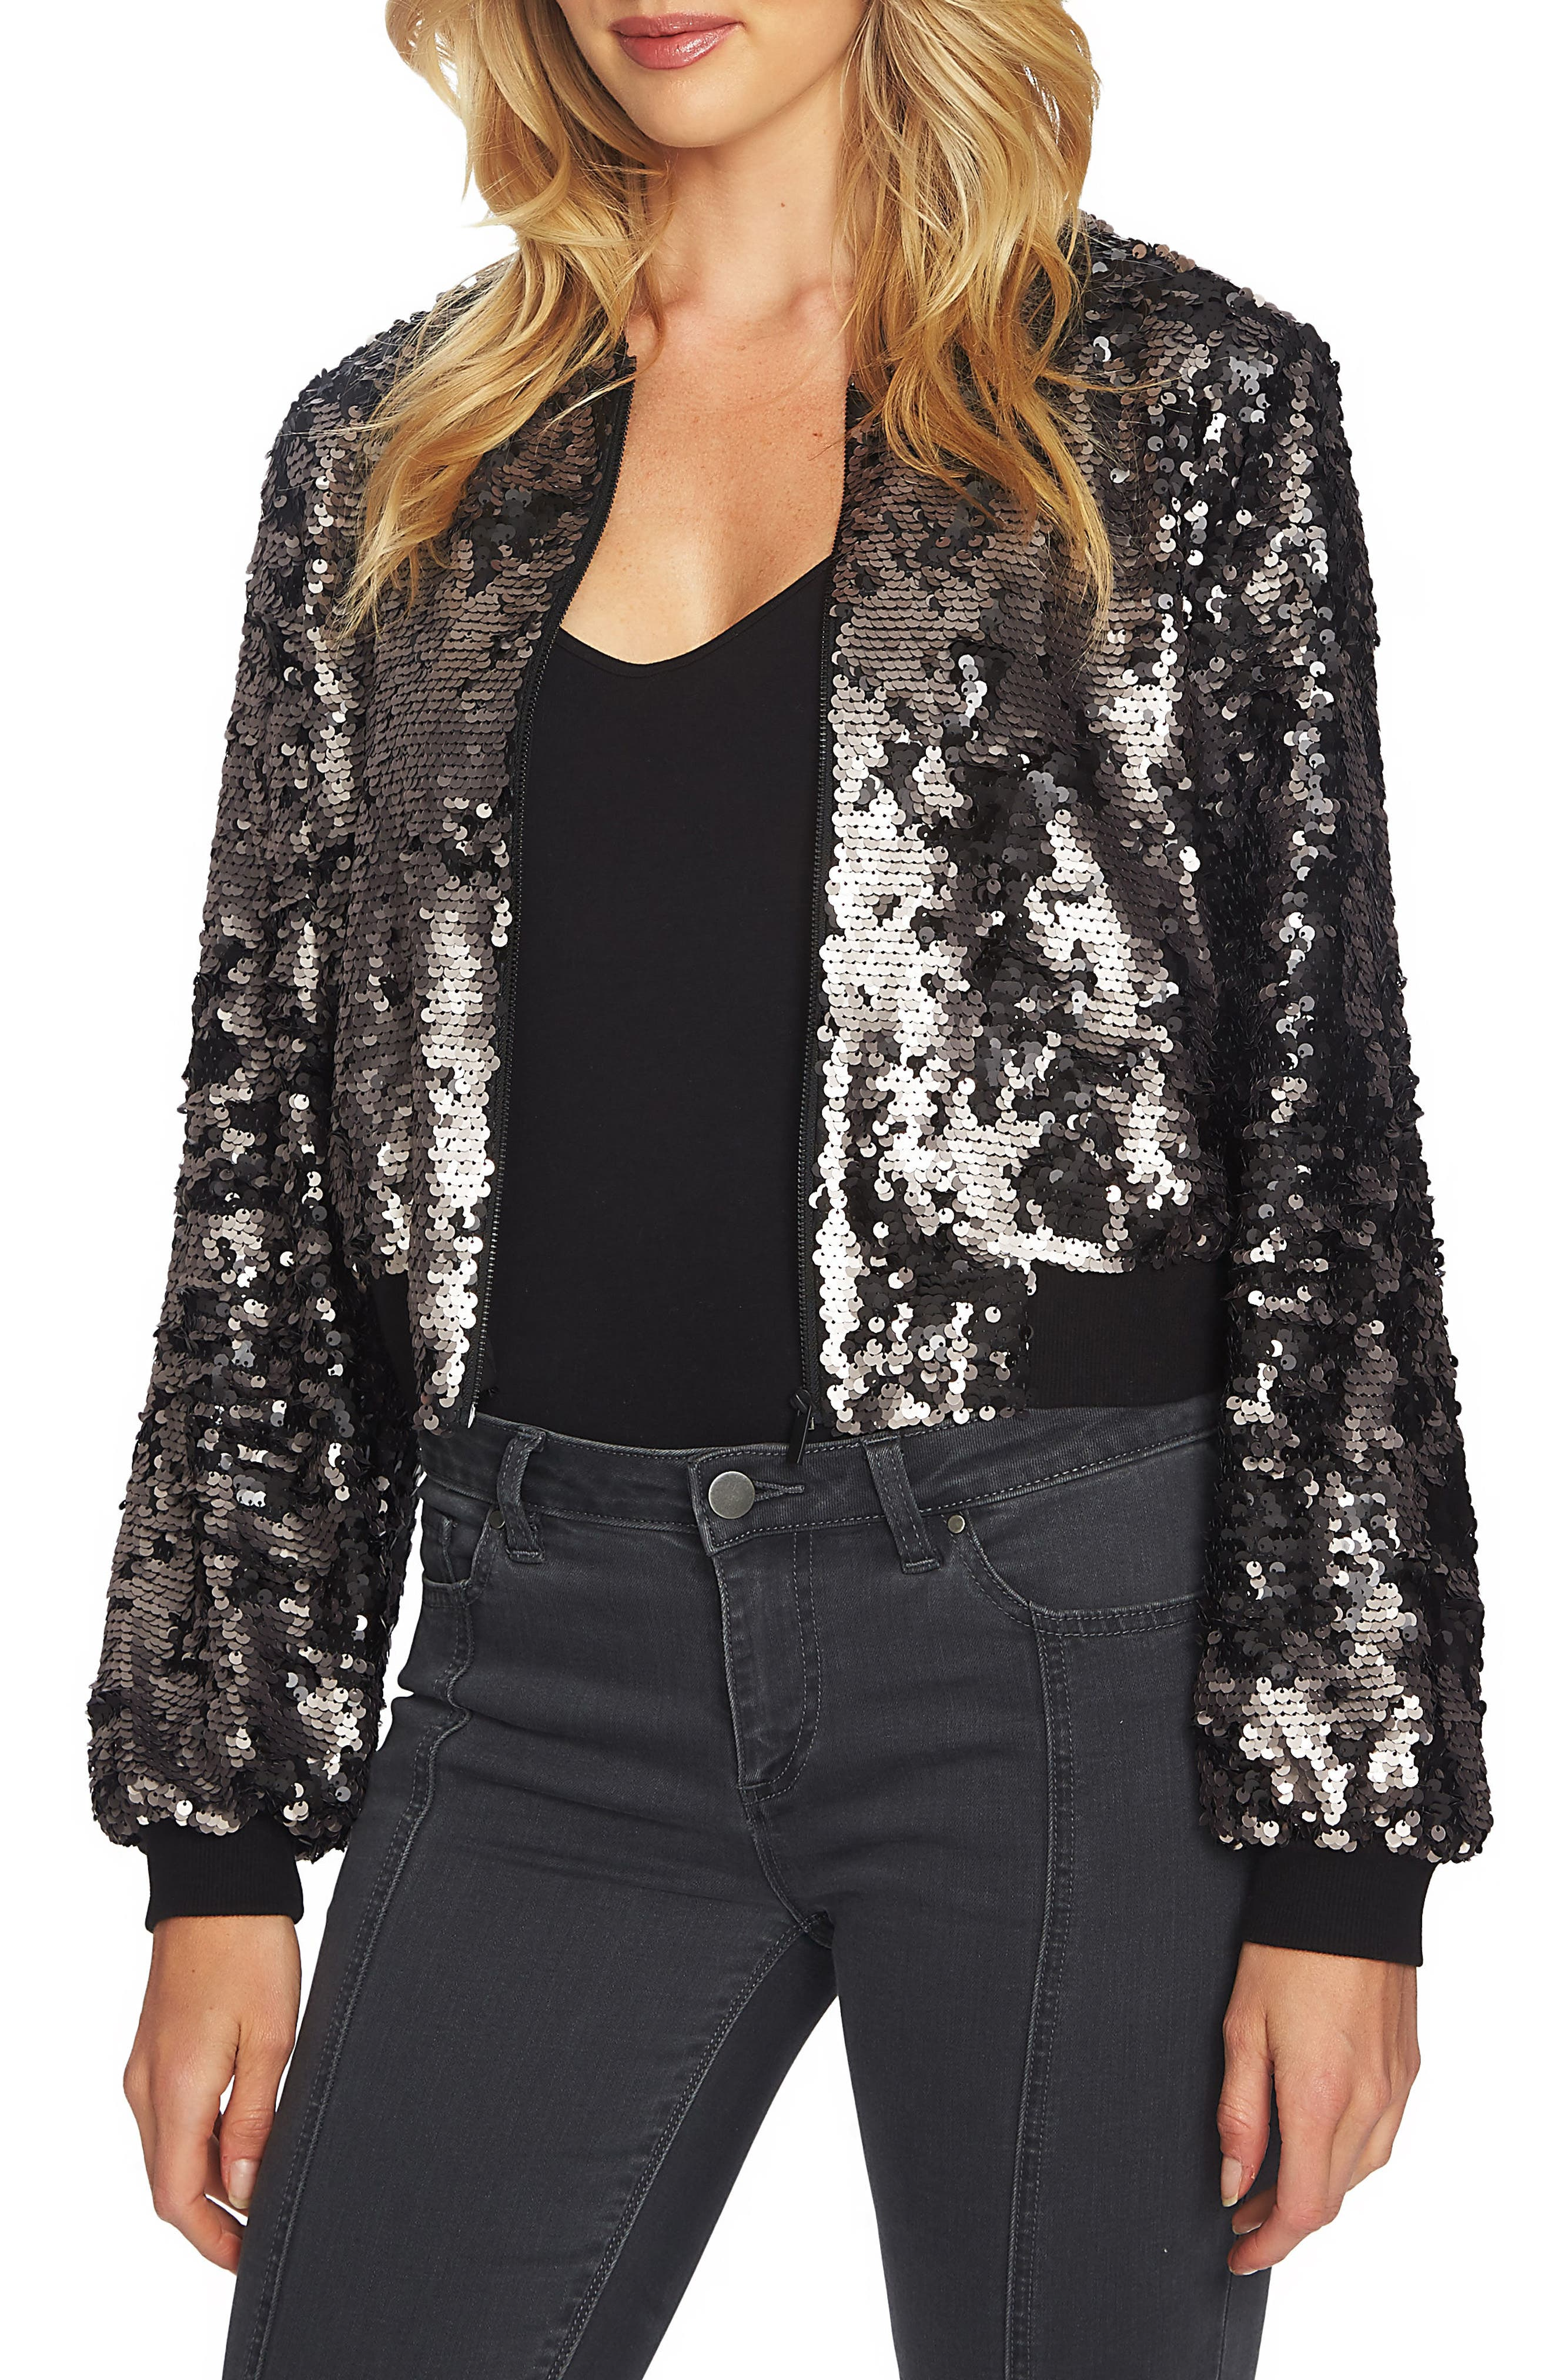 Main Image - 1.STATE Sequin Crop Bomber Jacket